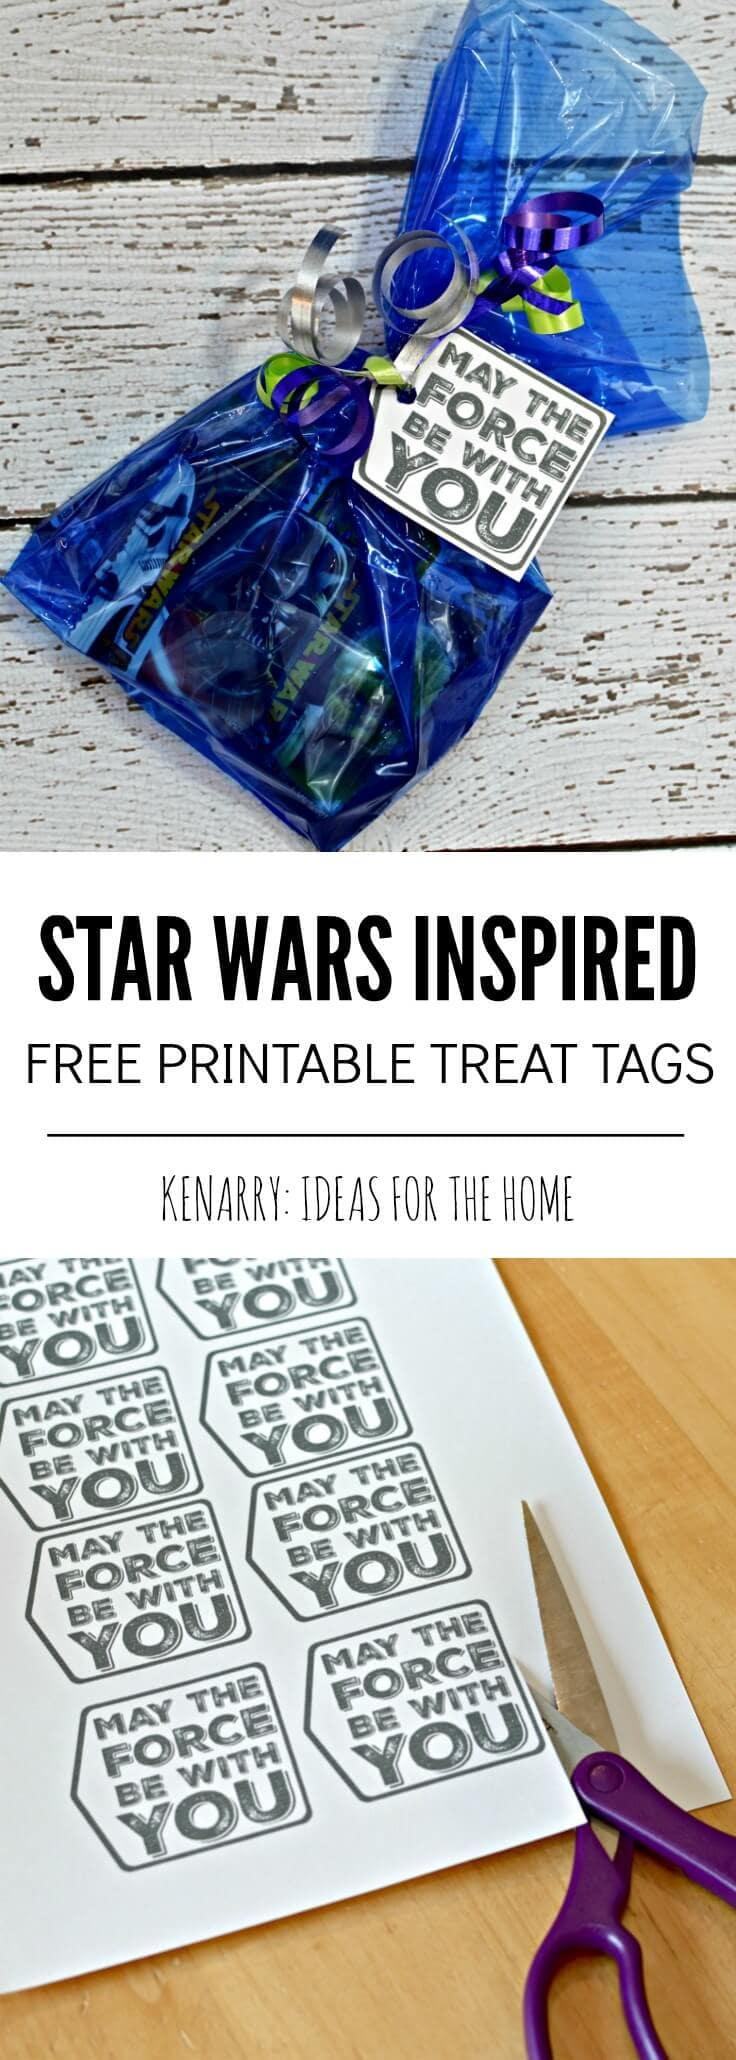 A cute star wars birthday party gift bag with a tag that reads May the Force Be With You